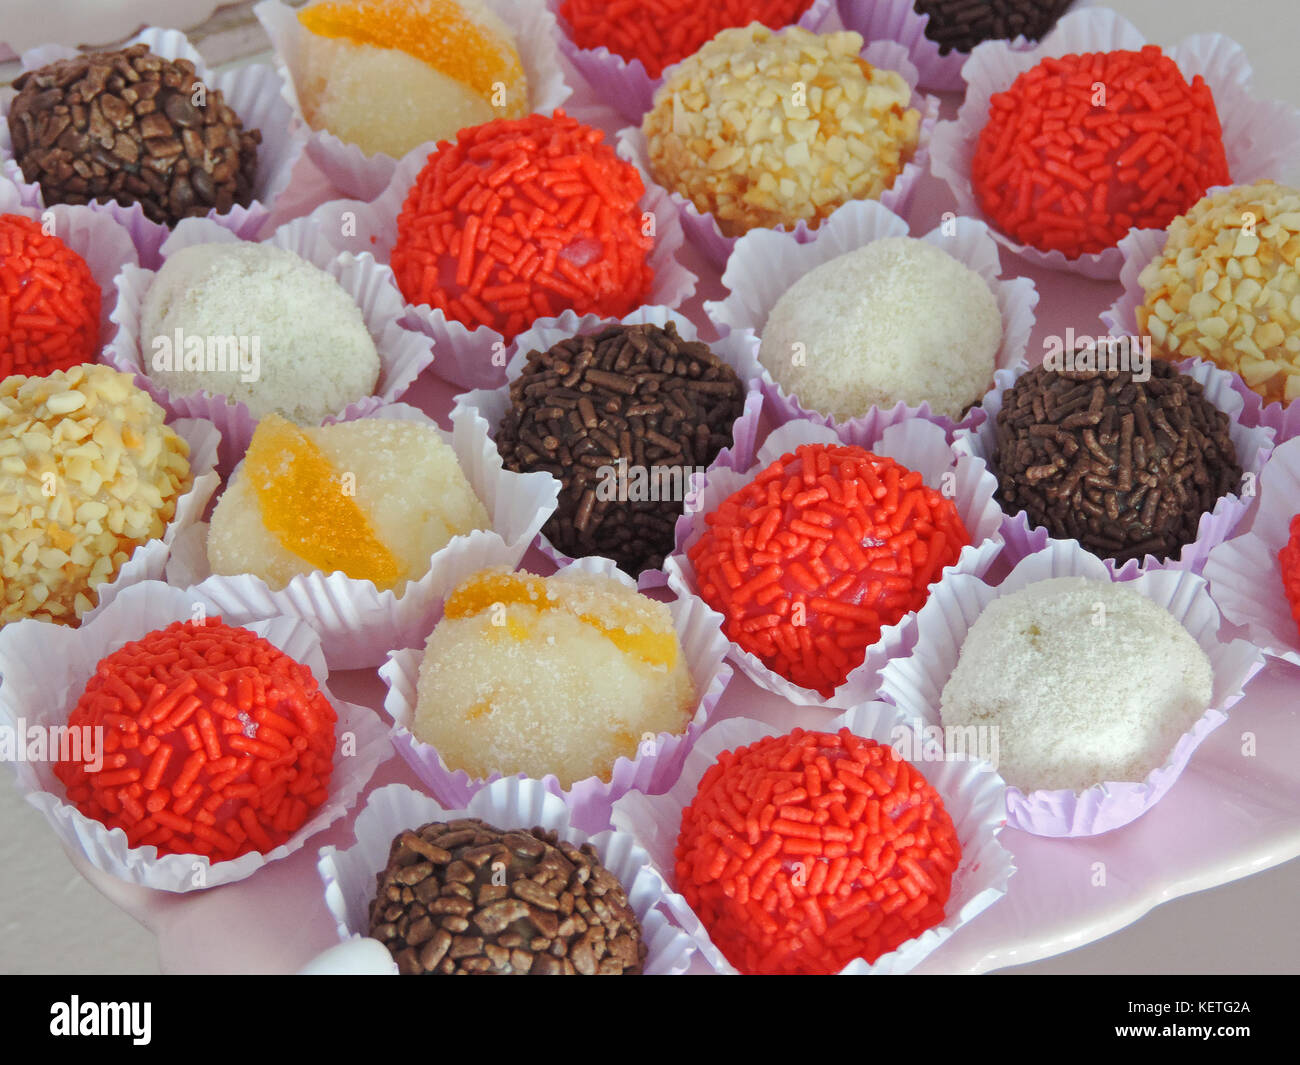 Colored candies - Stock Image